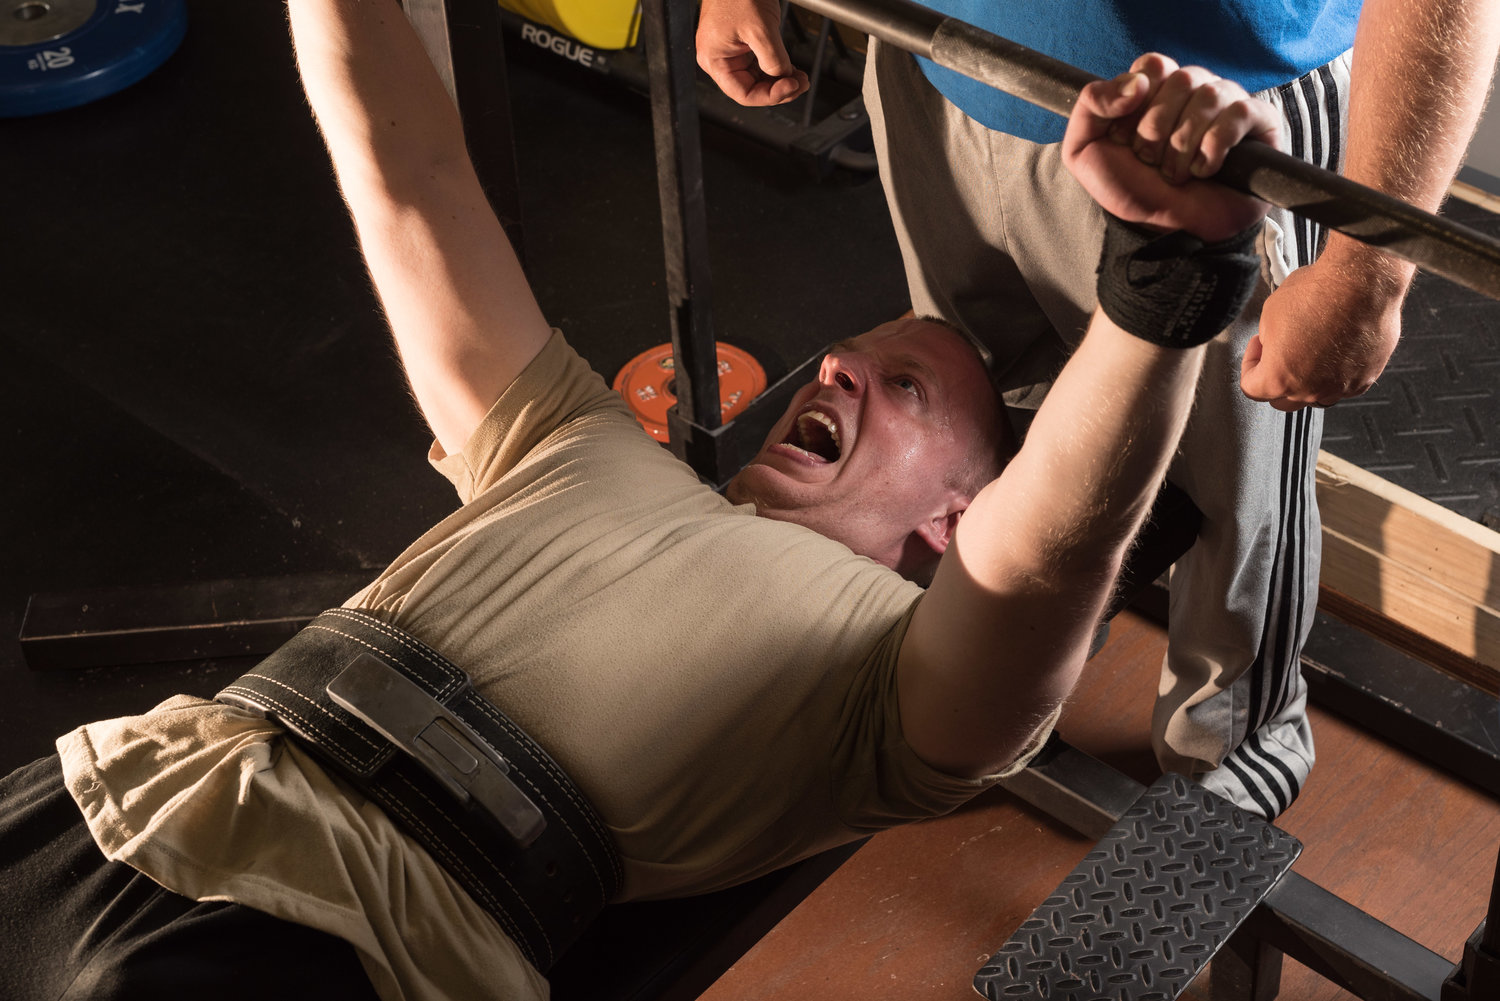 James adapted training to account for spinal fusion surgery, something many trainers would avoid. He's aggressive in terms of training, but cares about his lifters' health.